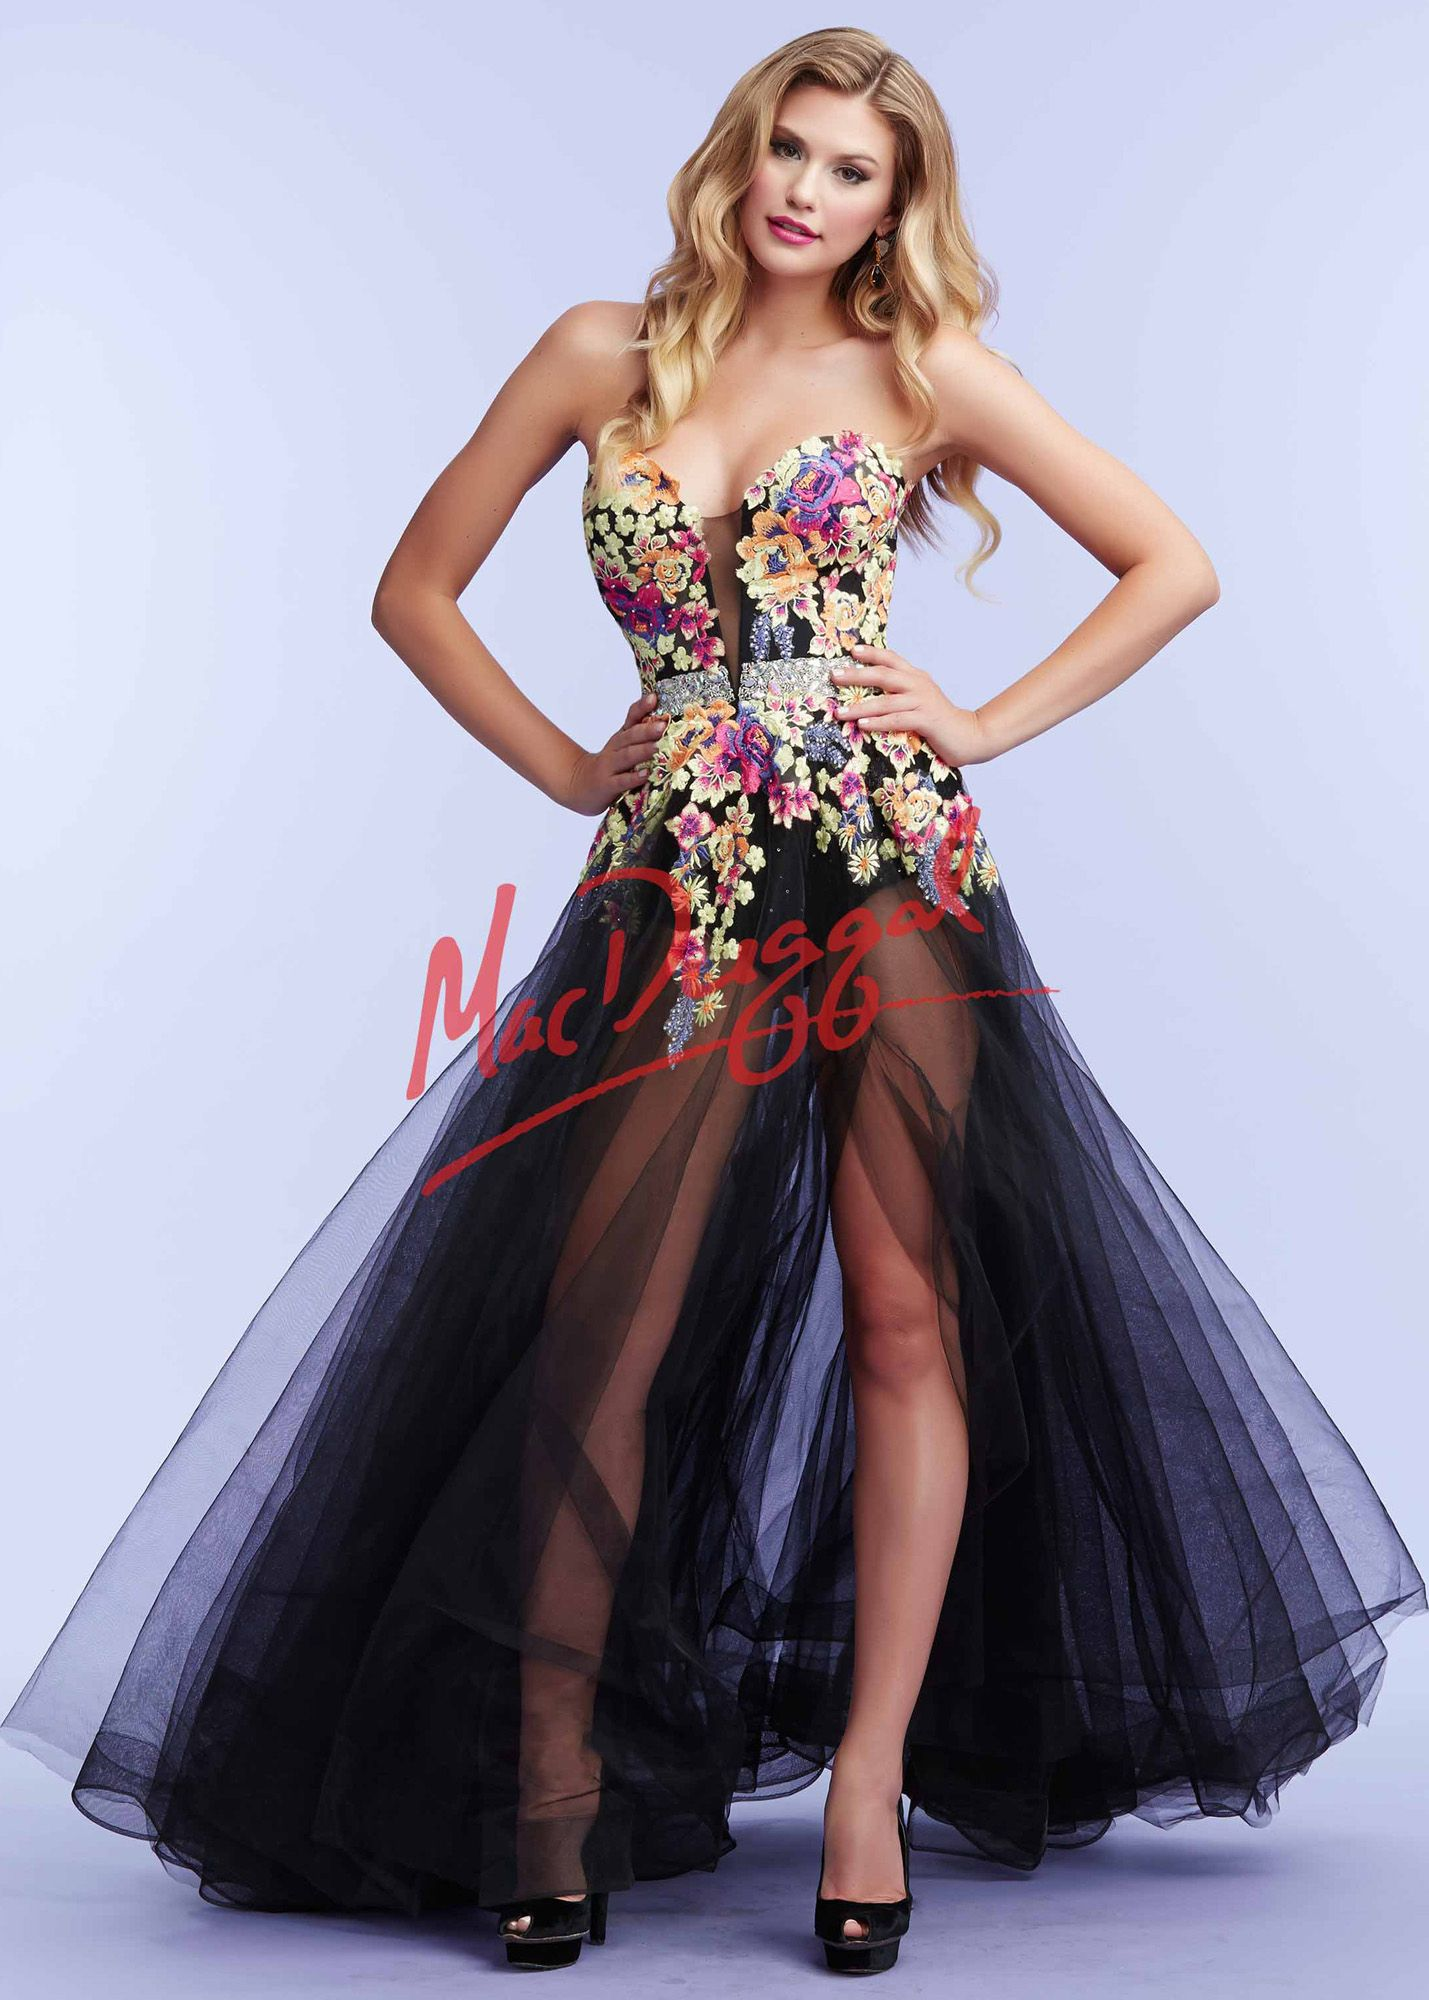 30fe0afd921 Mac Duggal 85441 Floral Hot Shorts Gown available at RissyRoos.com ...